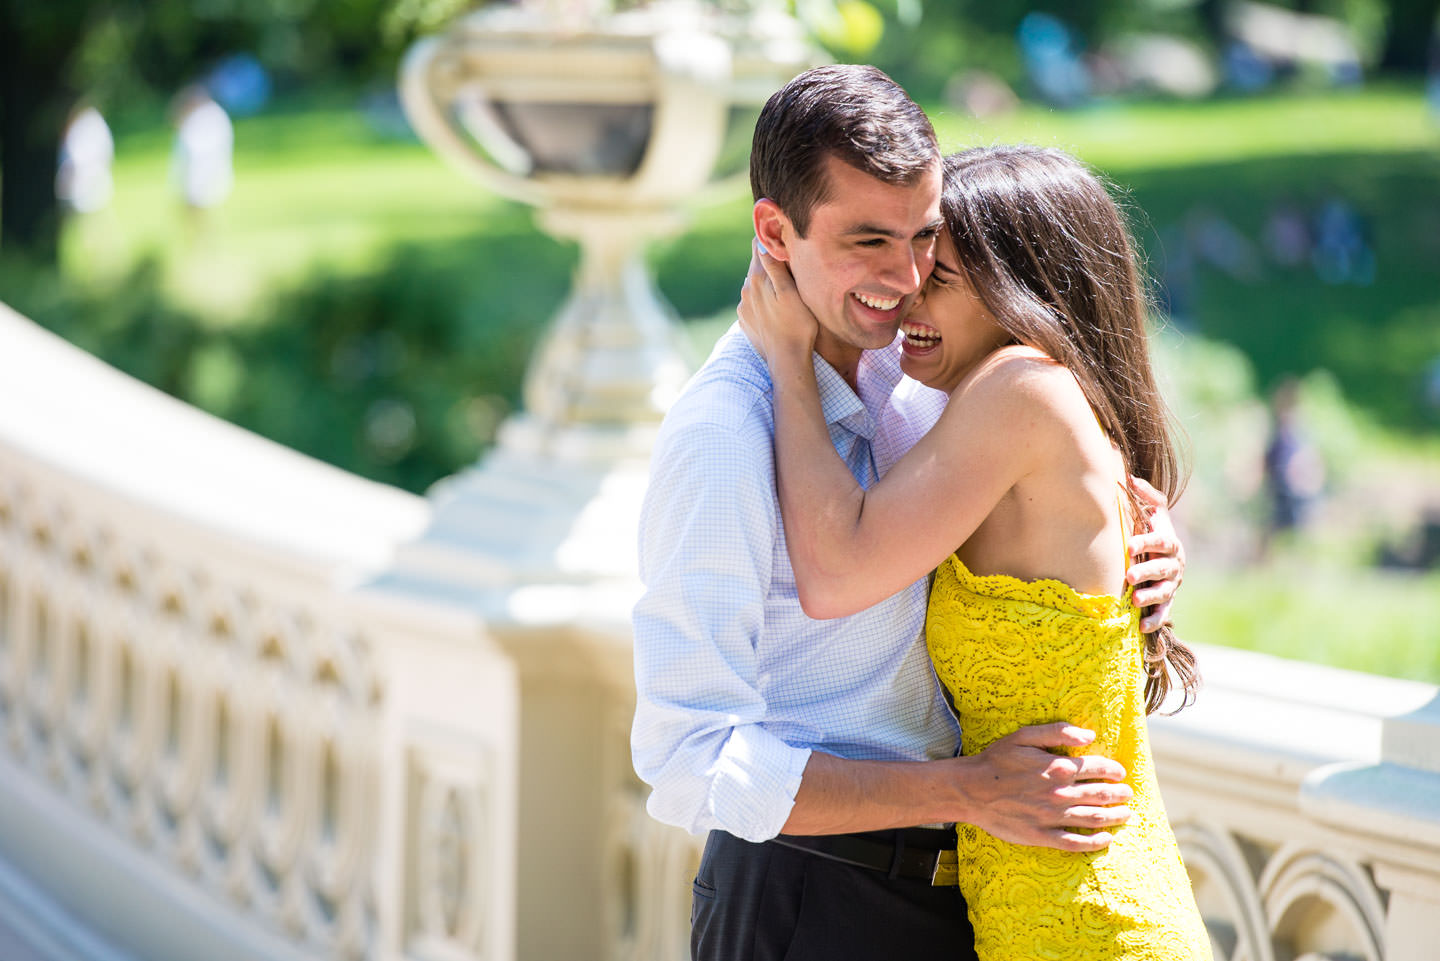 emotional girl happy after proposal on bow bridge in central park new york city